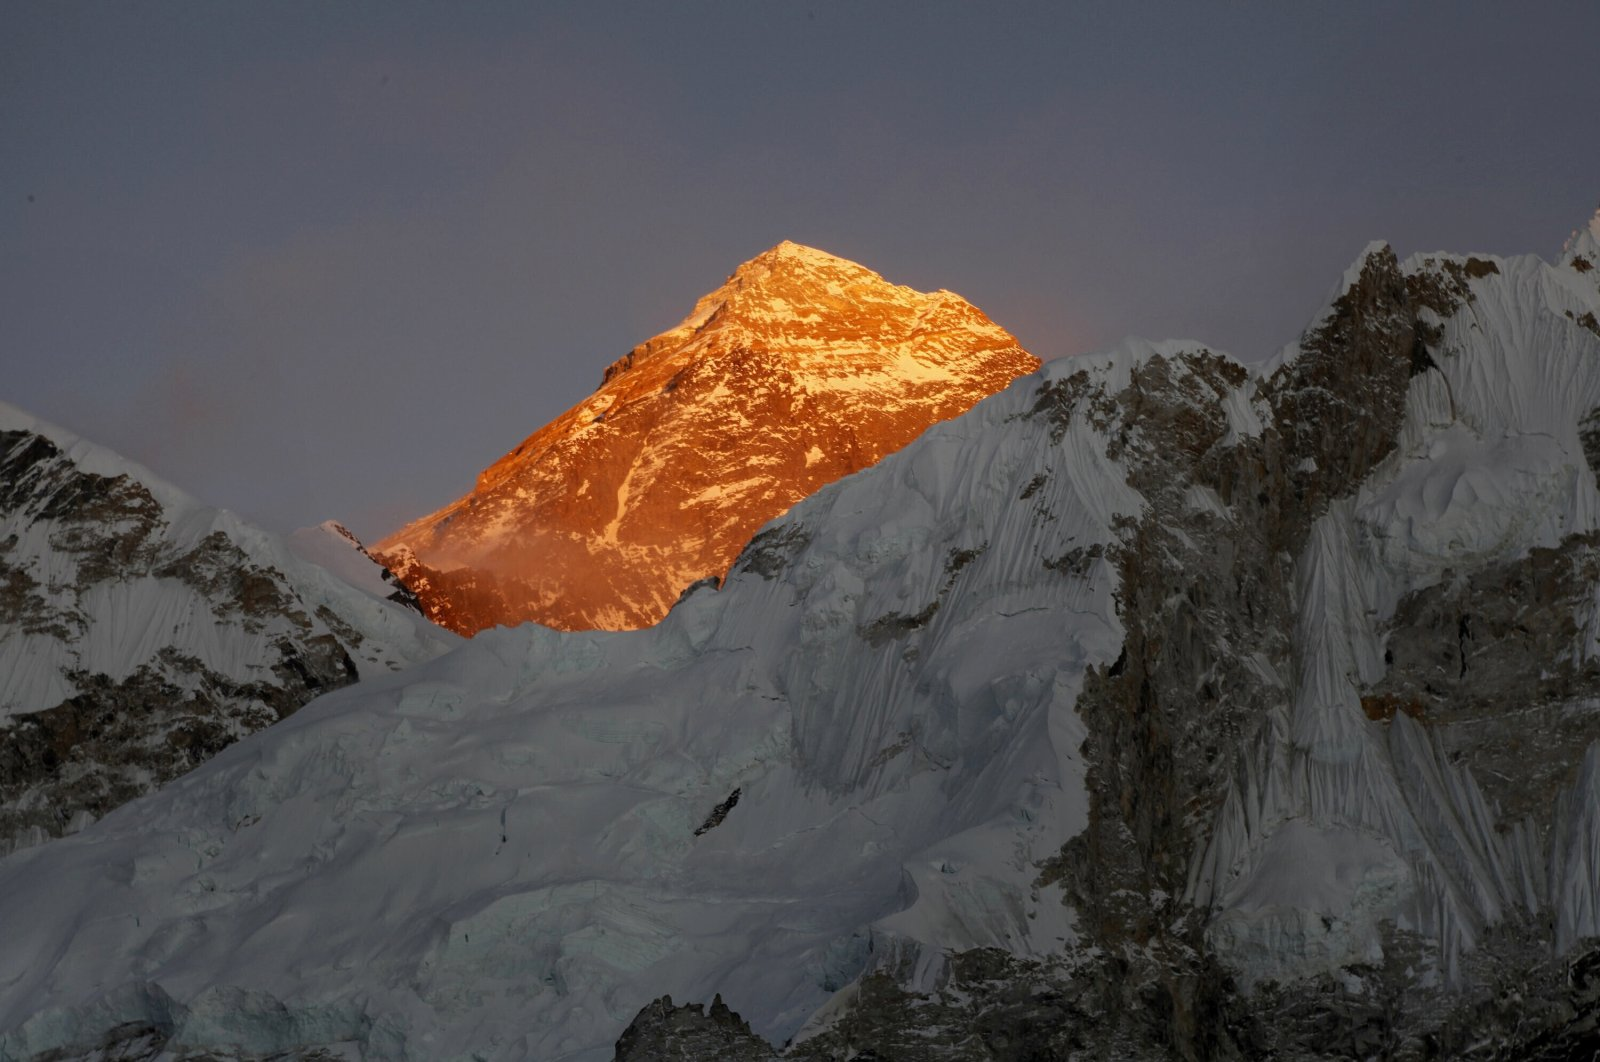 Mount Everest is seen from the way to Kalapatthar in Nepal, Nov. 12, 2015. (AP Photo)